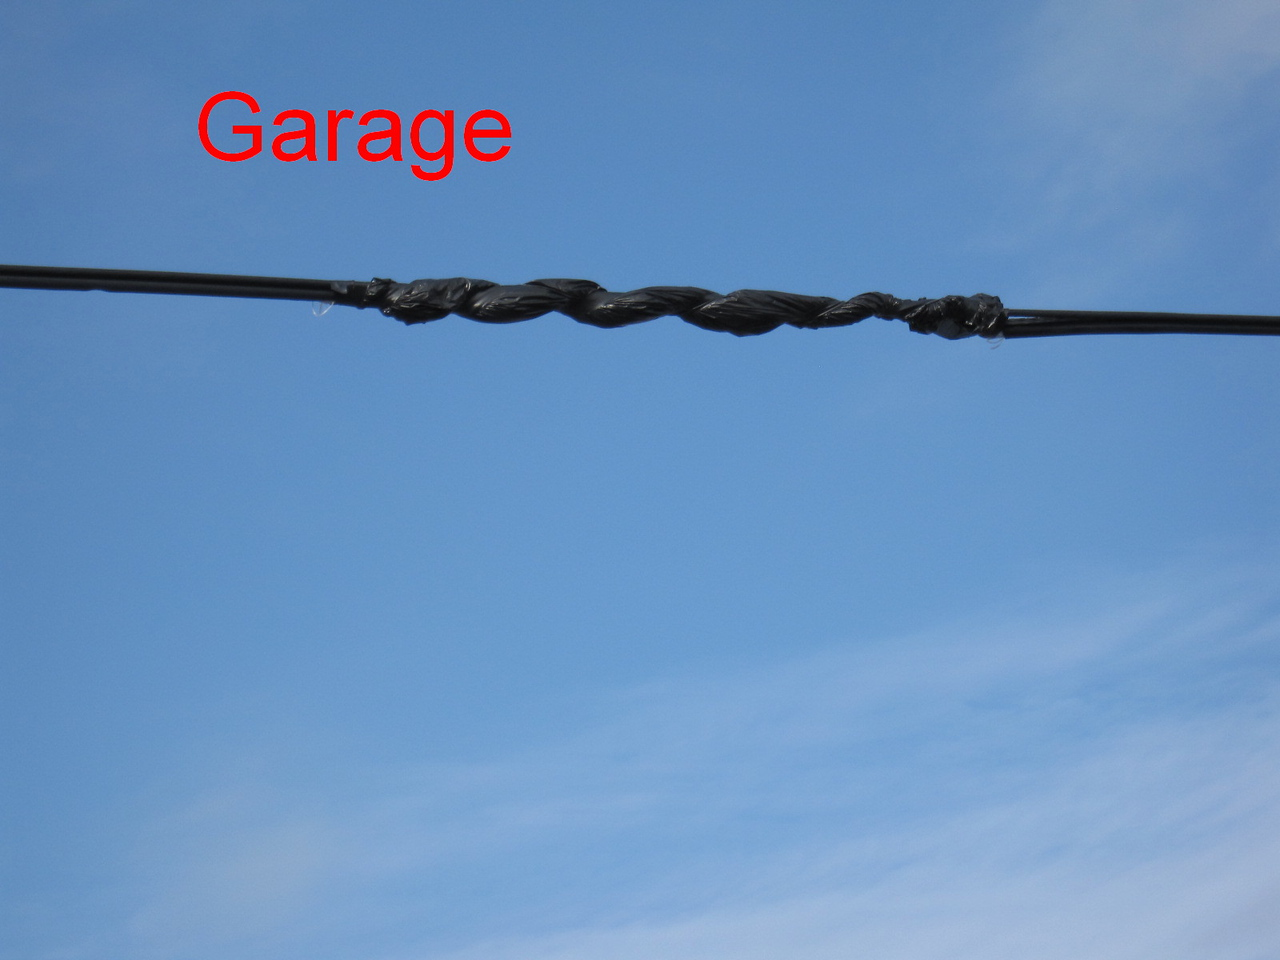 Truck Garage - Aerial cable